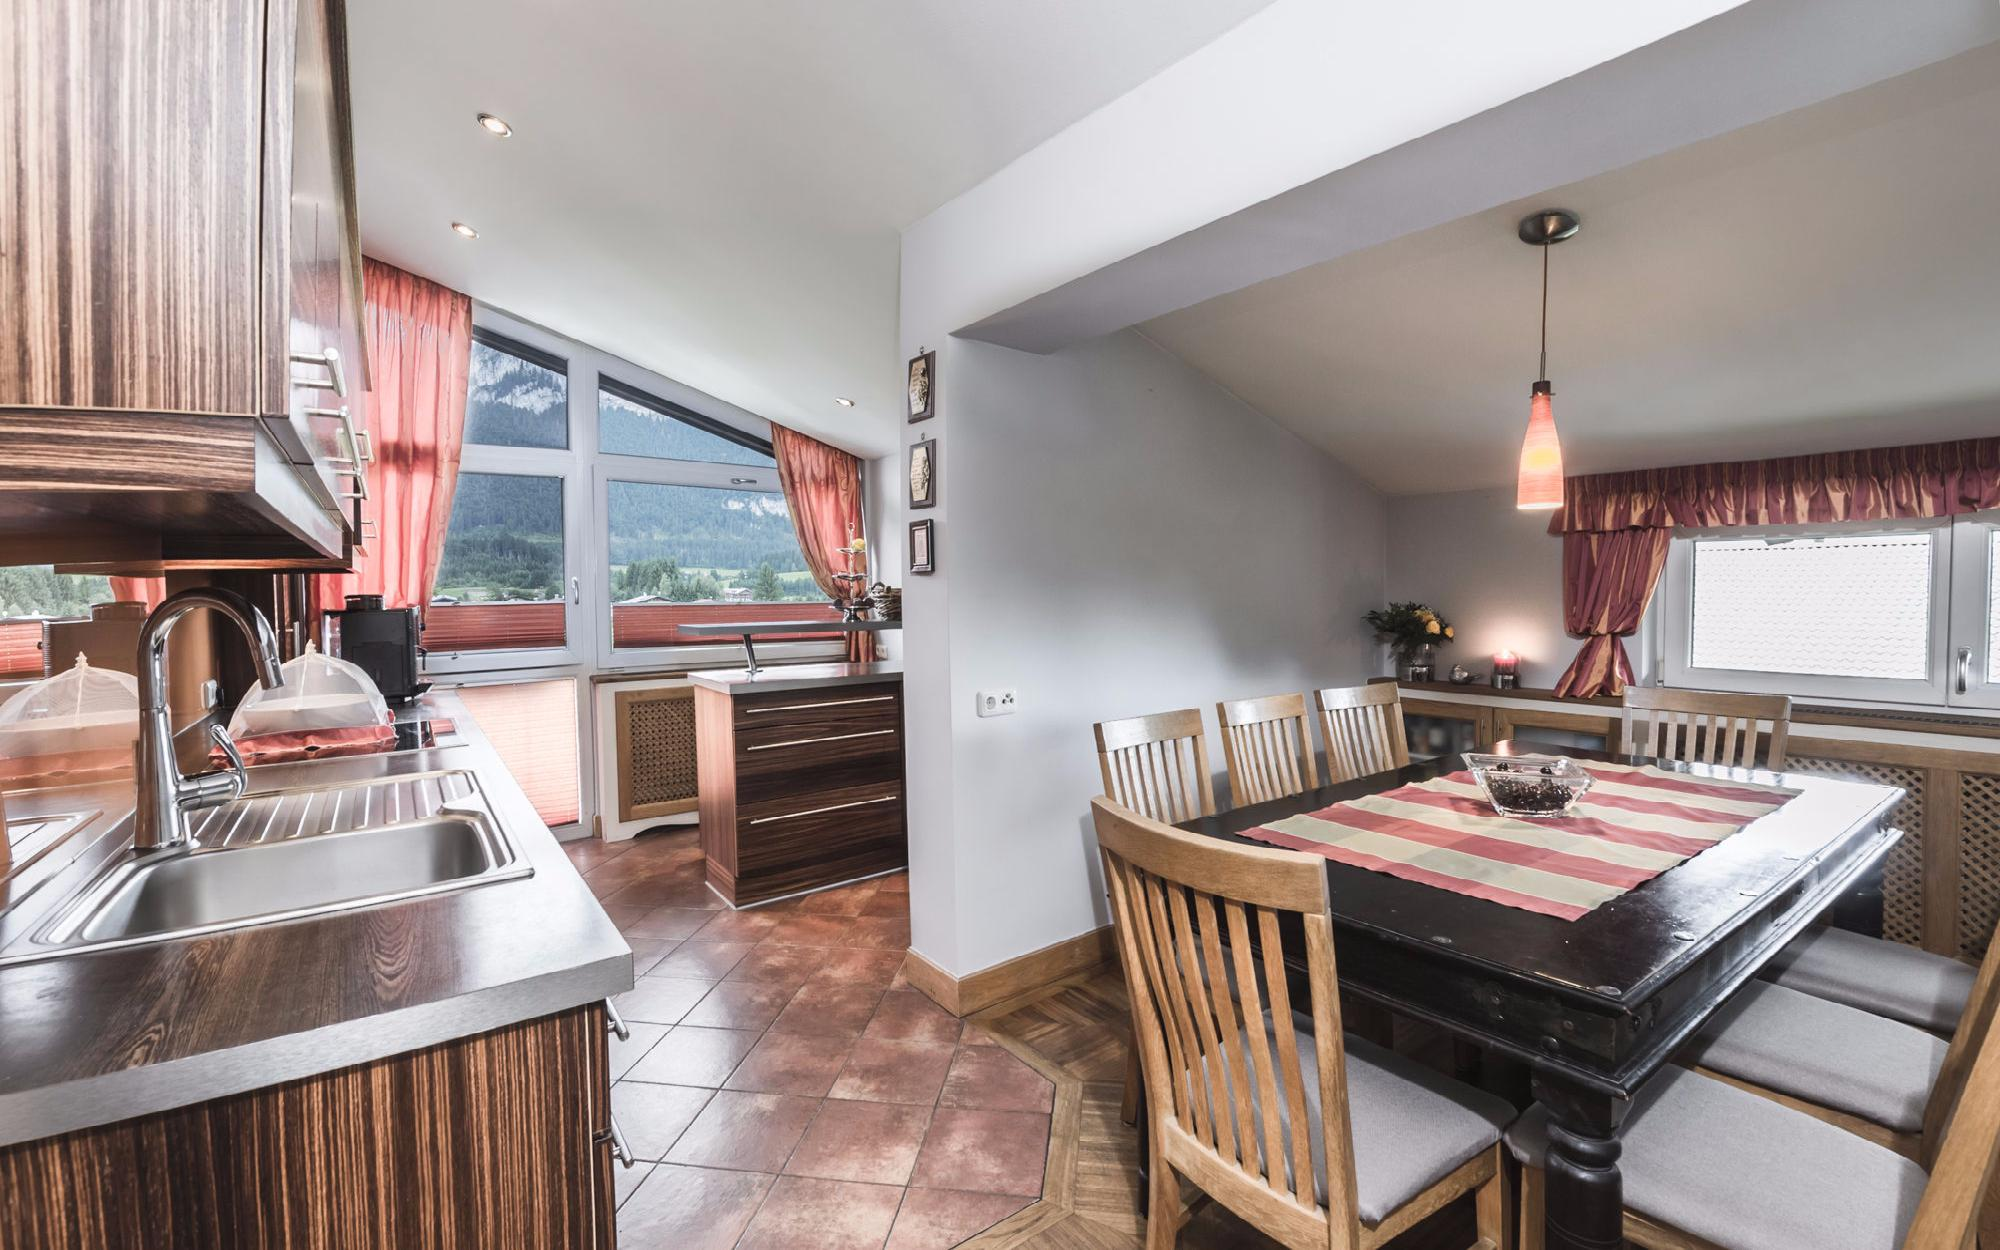 Family-friendly attic floor apartment in St. Johann in Tyrol SOLD - St. Johann in Tirol